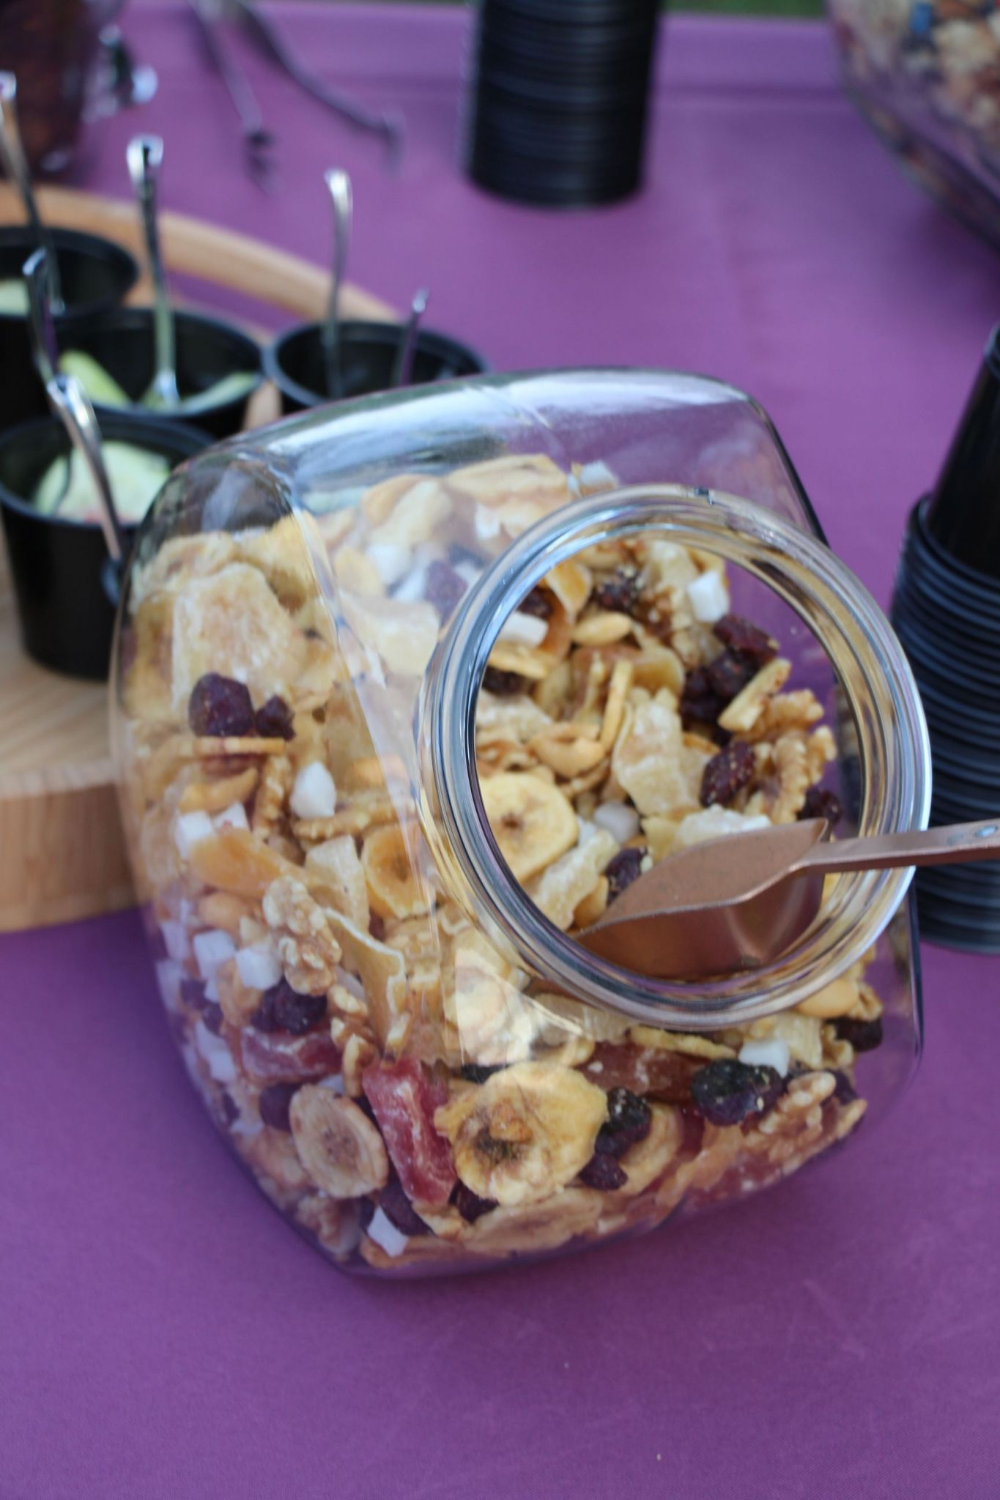 glass containers can be used for trail mix bar or smores or other food service items Khimaira Farm rezepte selber machen mix mix bar mix bar wedding mix recipes mix recip...